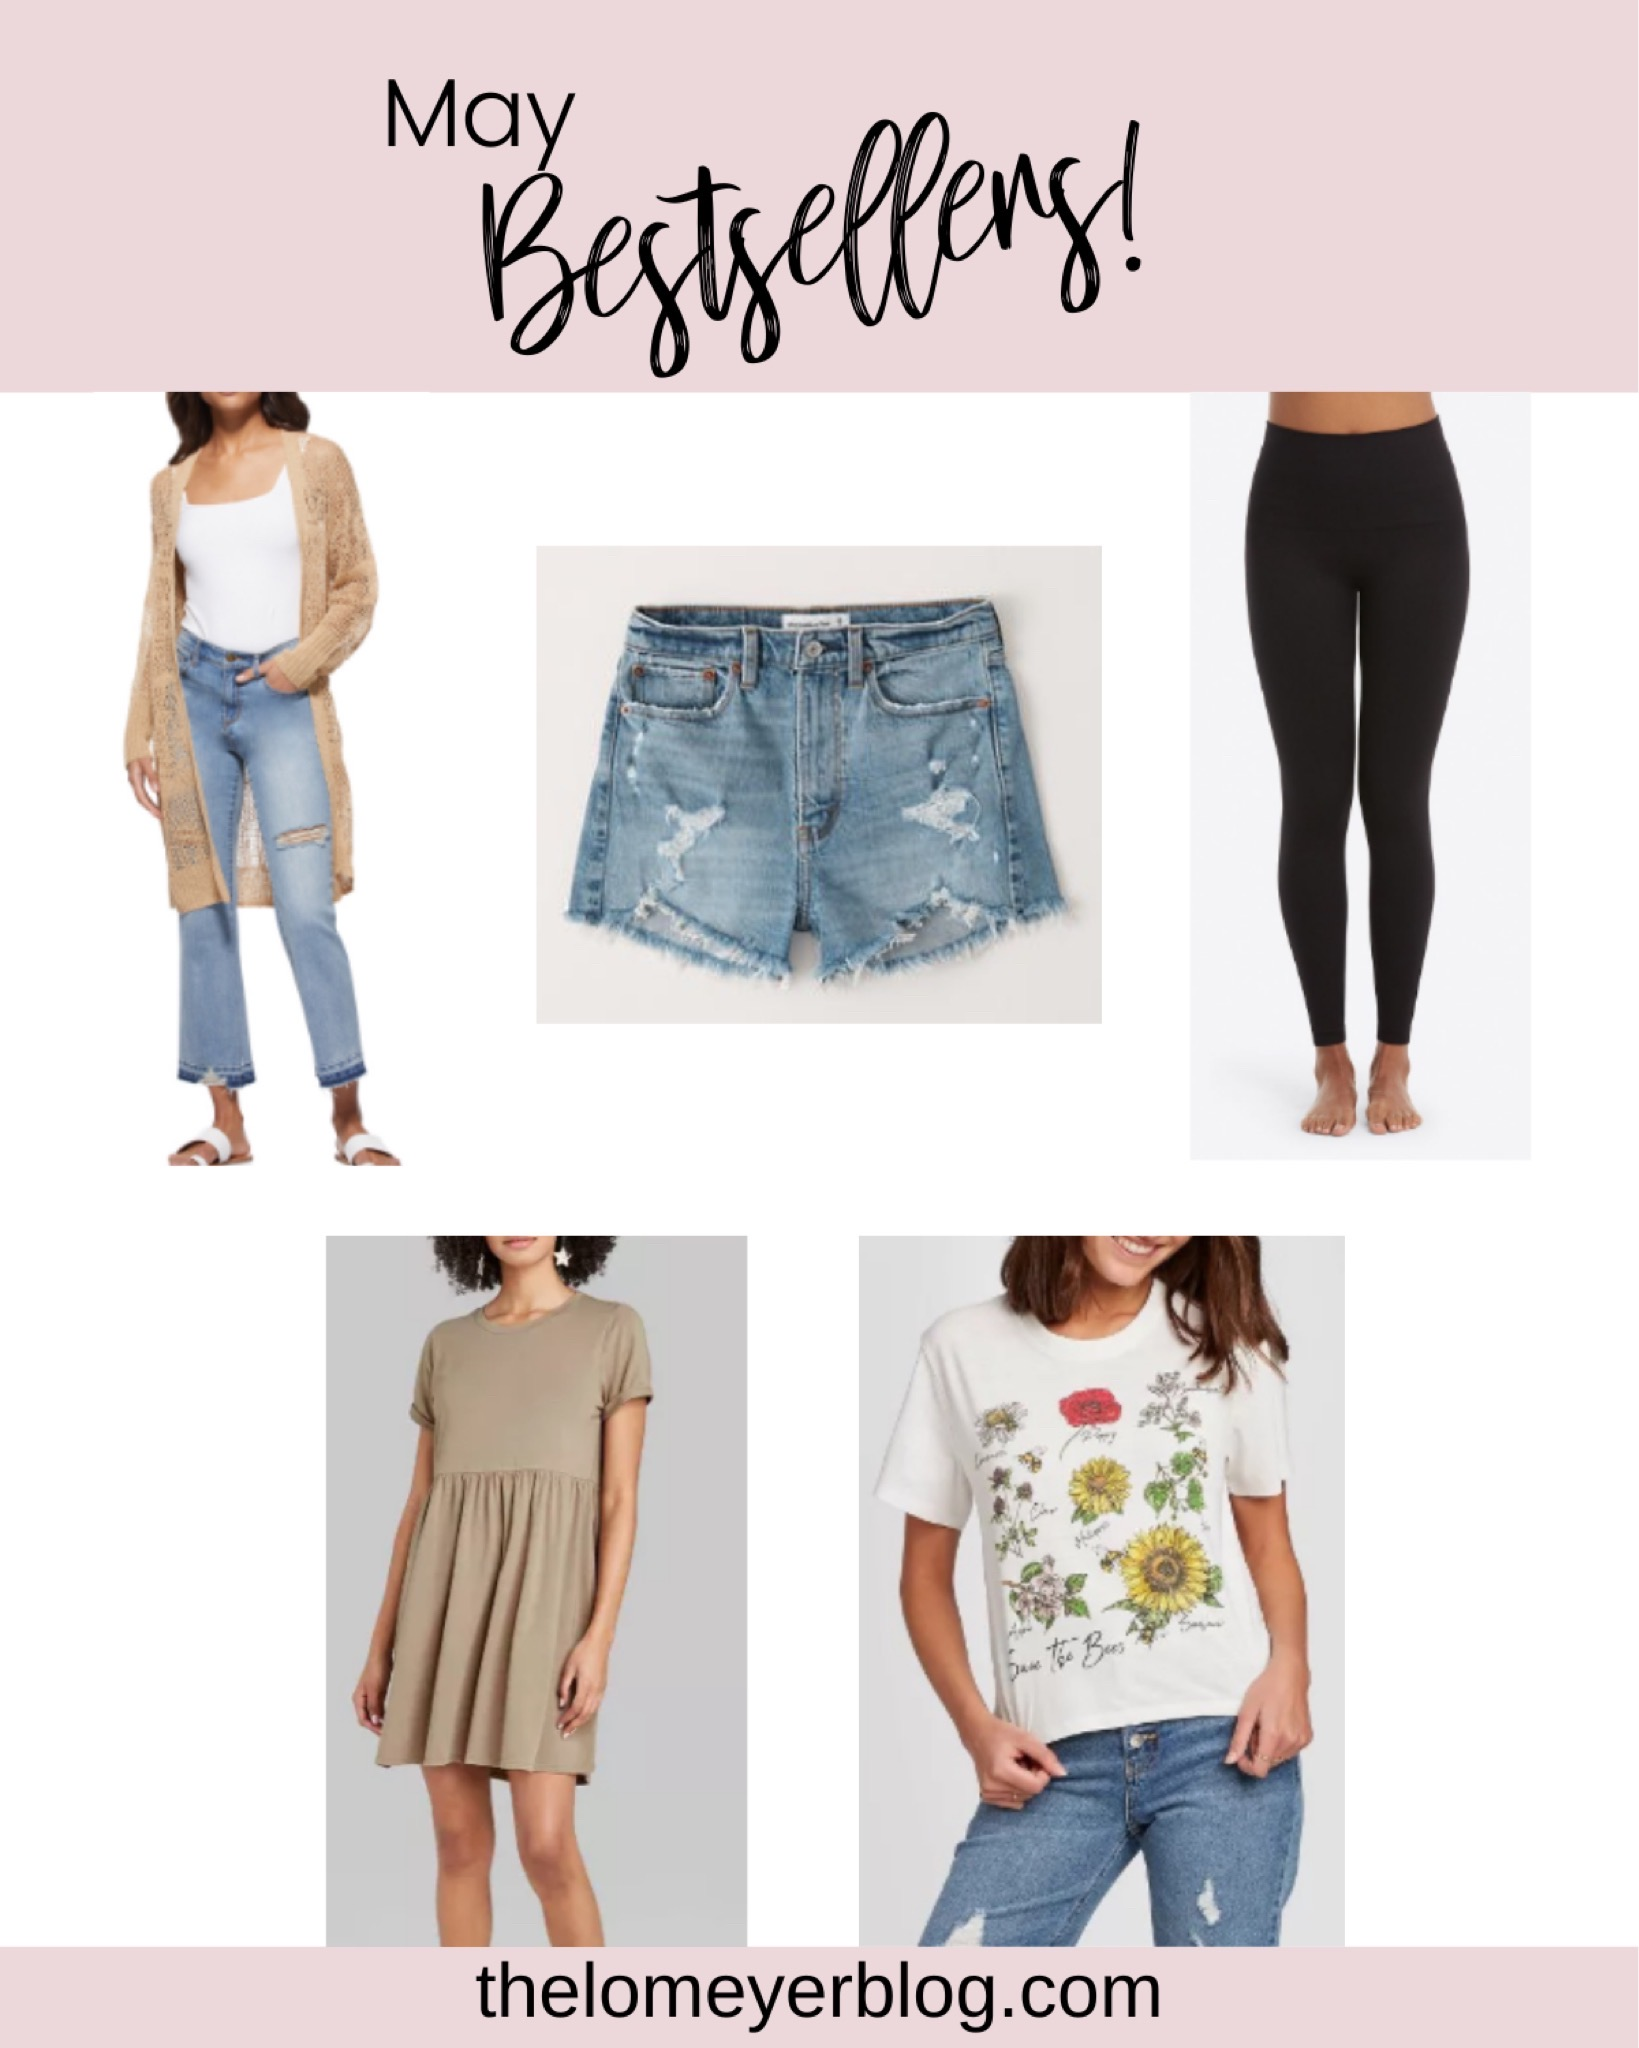 Blog Bestsellers | Style Blogger Lauren Meyer shares May Blog Bestsellers & Follower Favorites